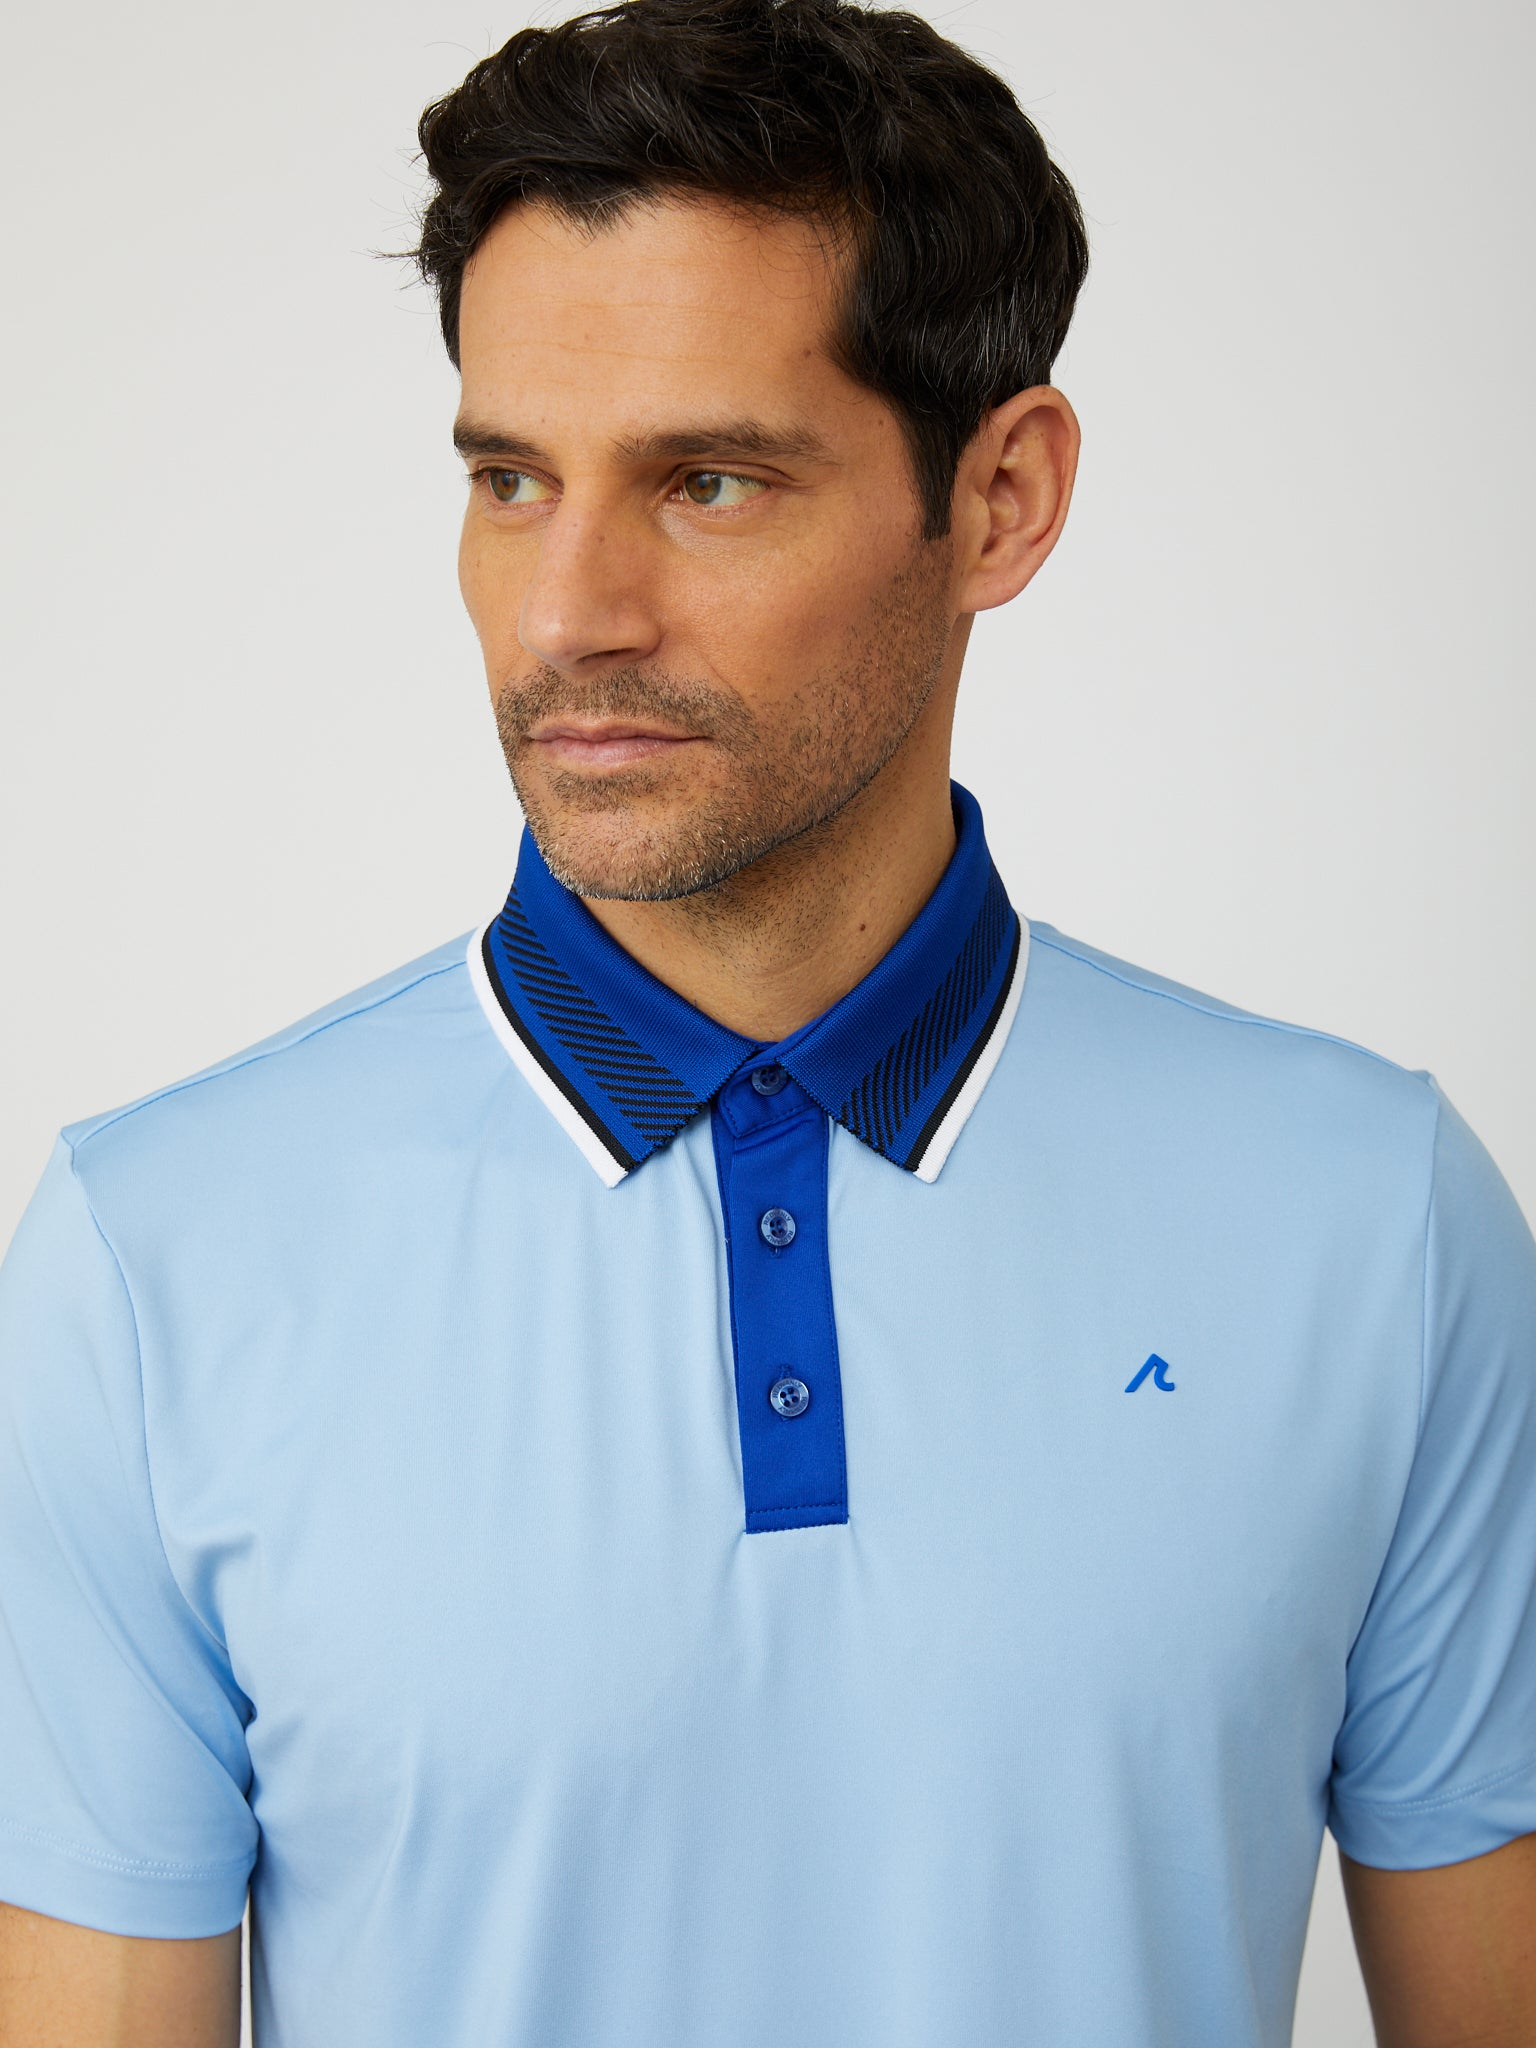 Truet Polo in Placid Blue